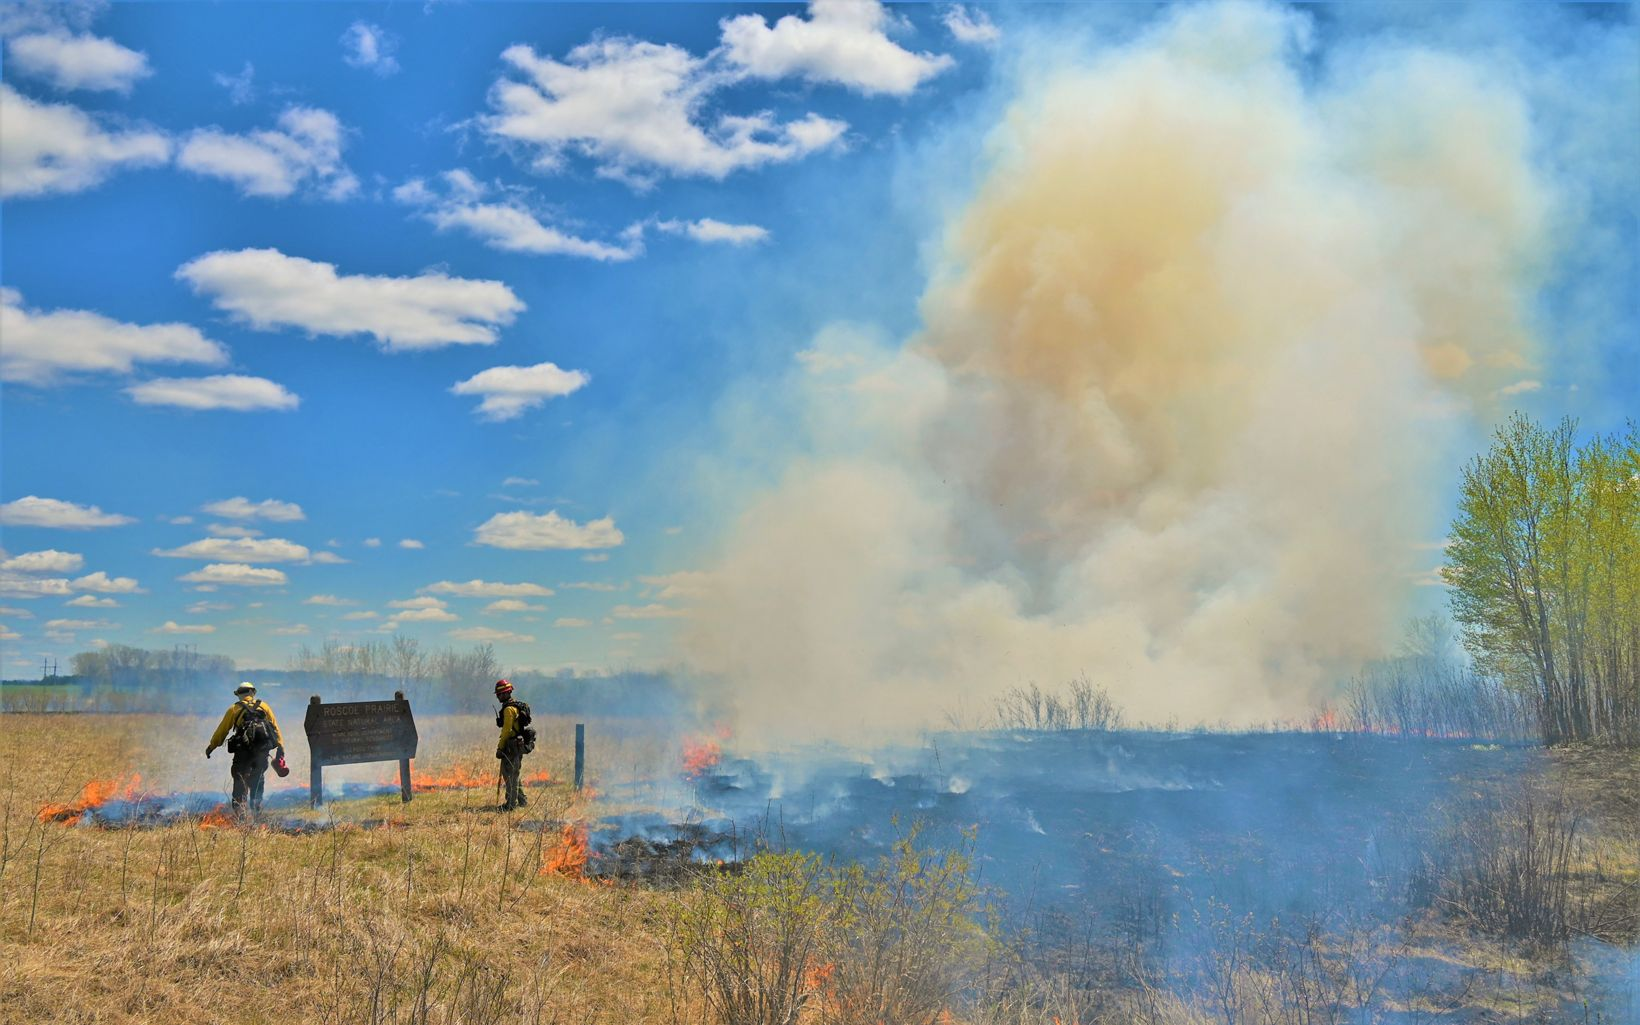 Two techs standing at a prescribed burn on the prairie during a clear day.